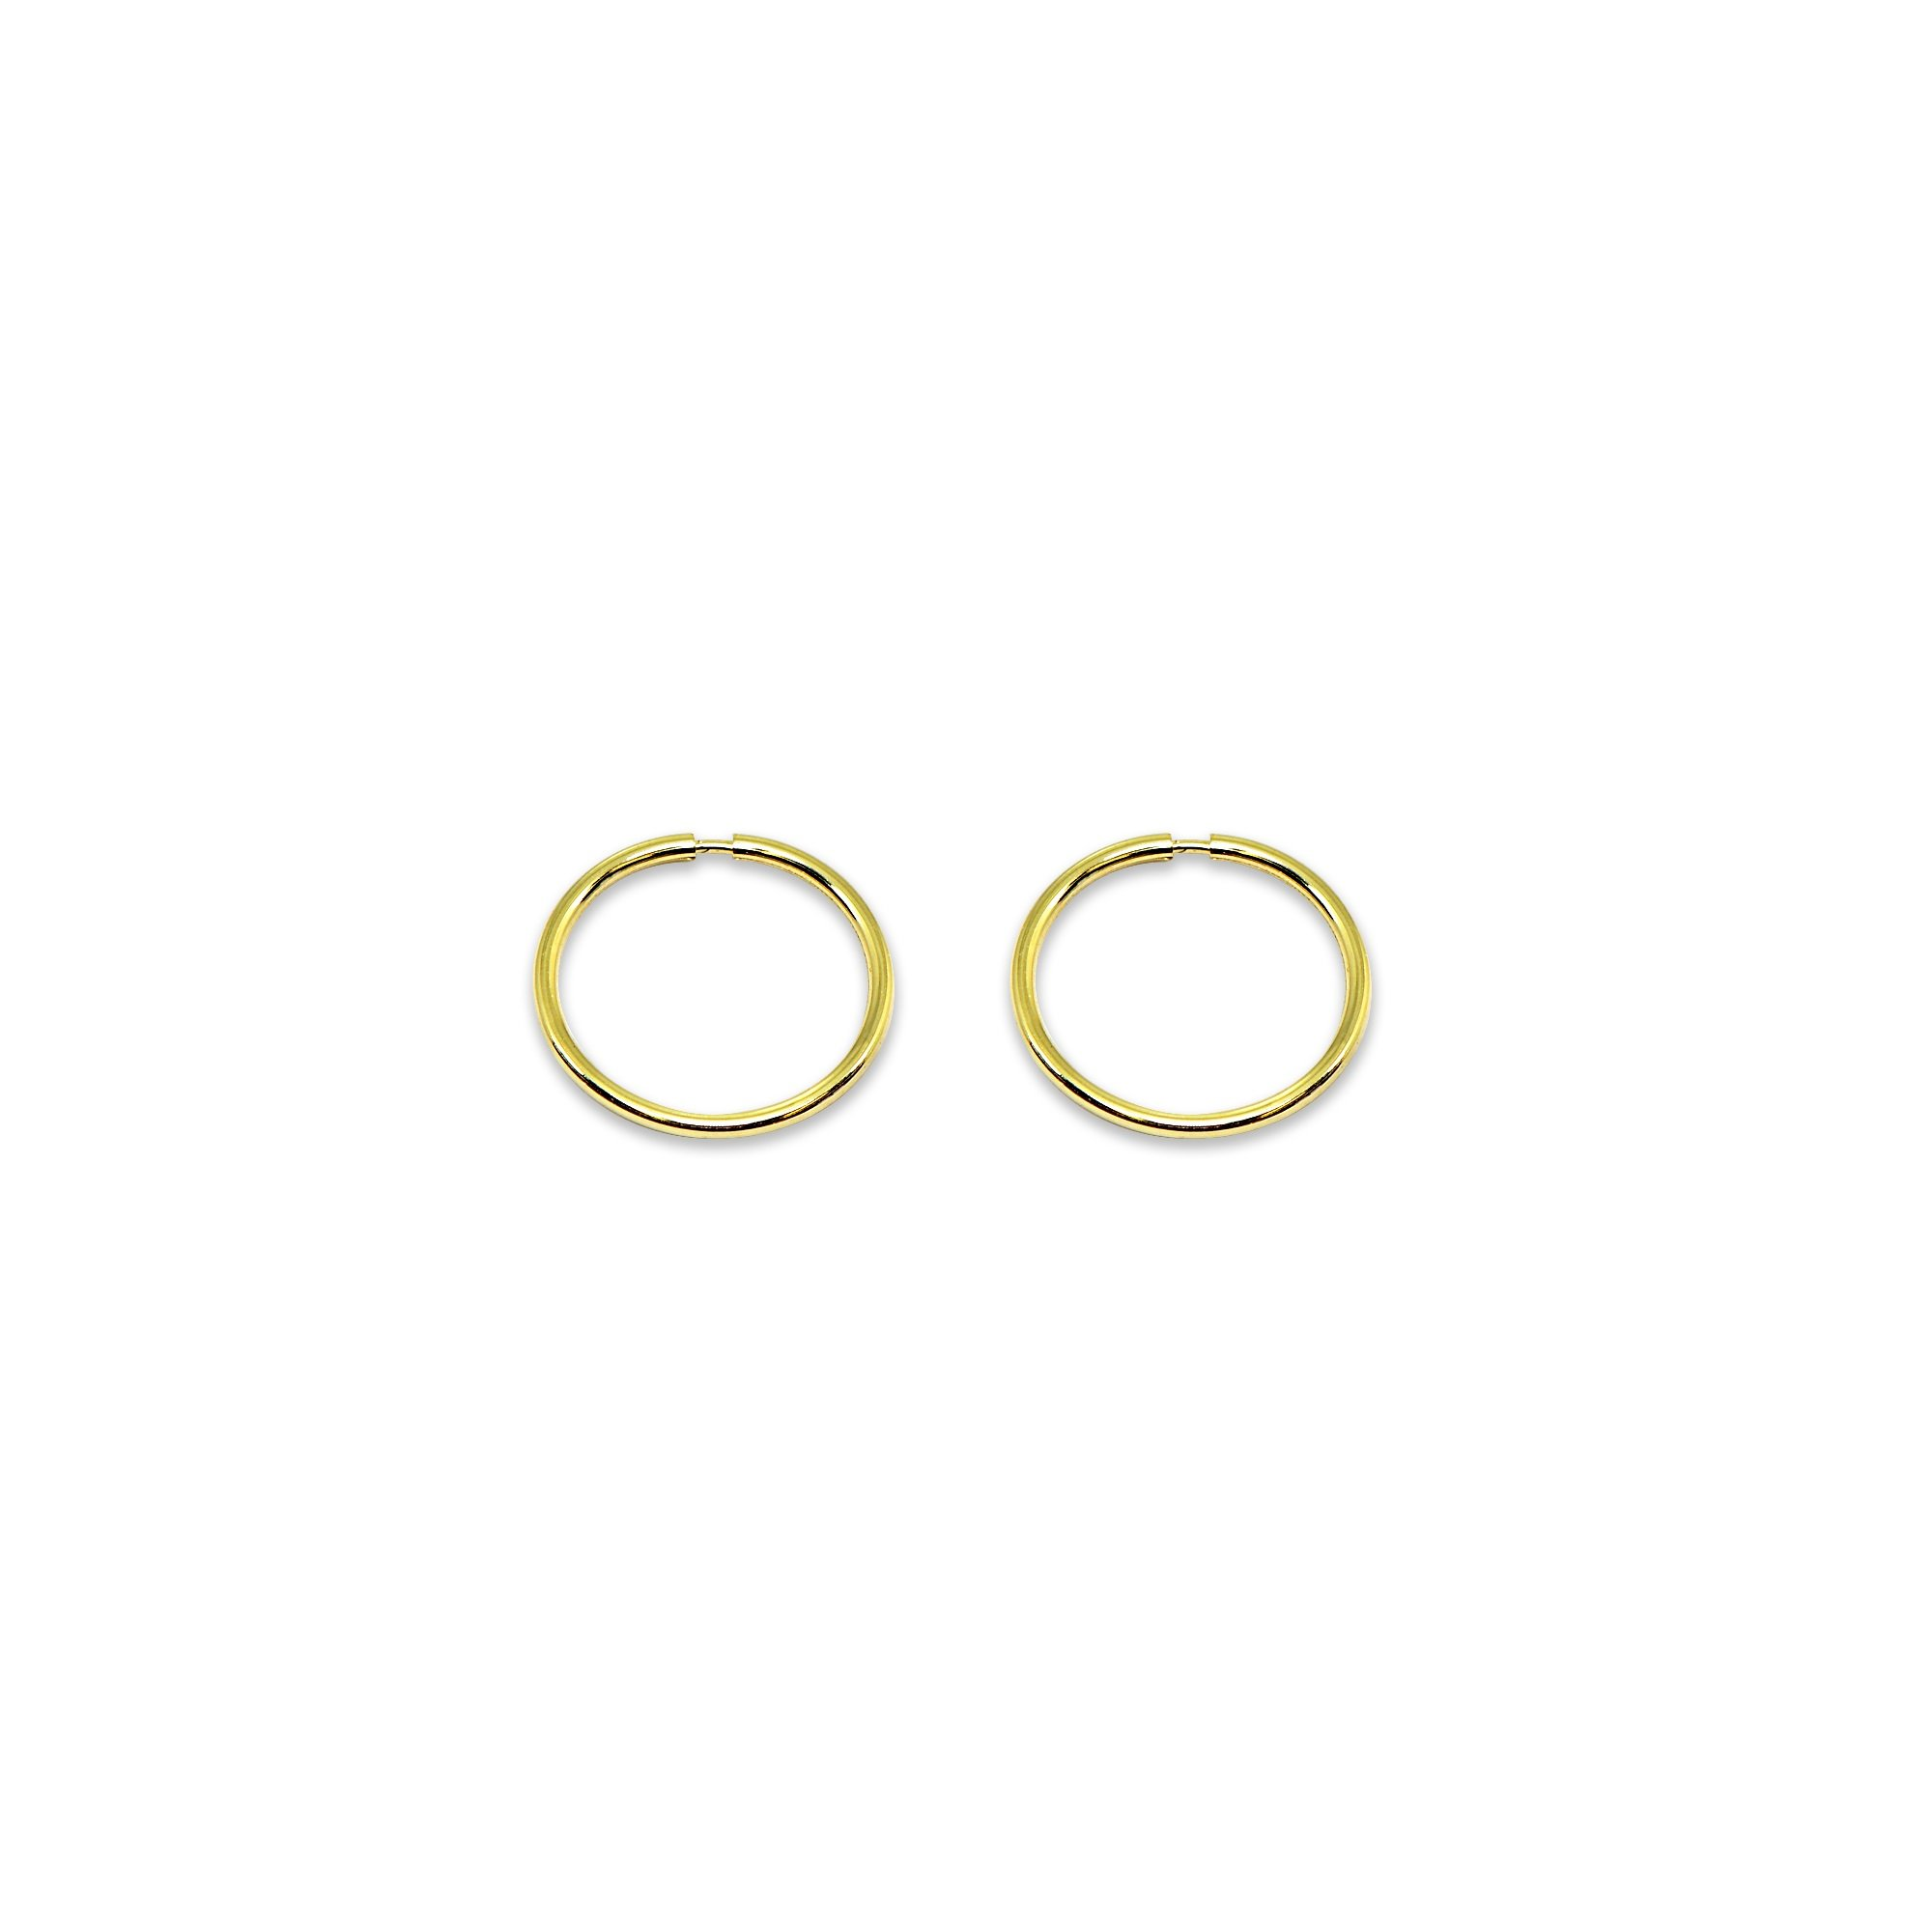 abd75c806 Galleon - 14K Gold Tiny Small Endless 10mm Round Thin Lightweight Unisex  Hoop Earrings